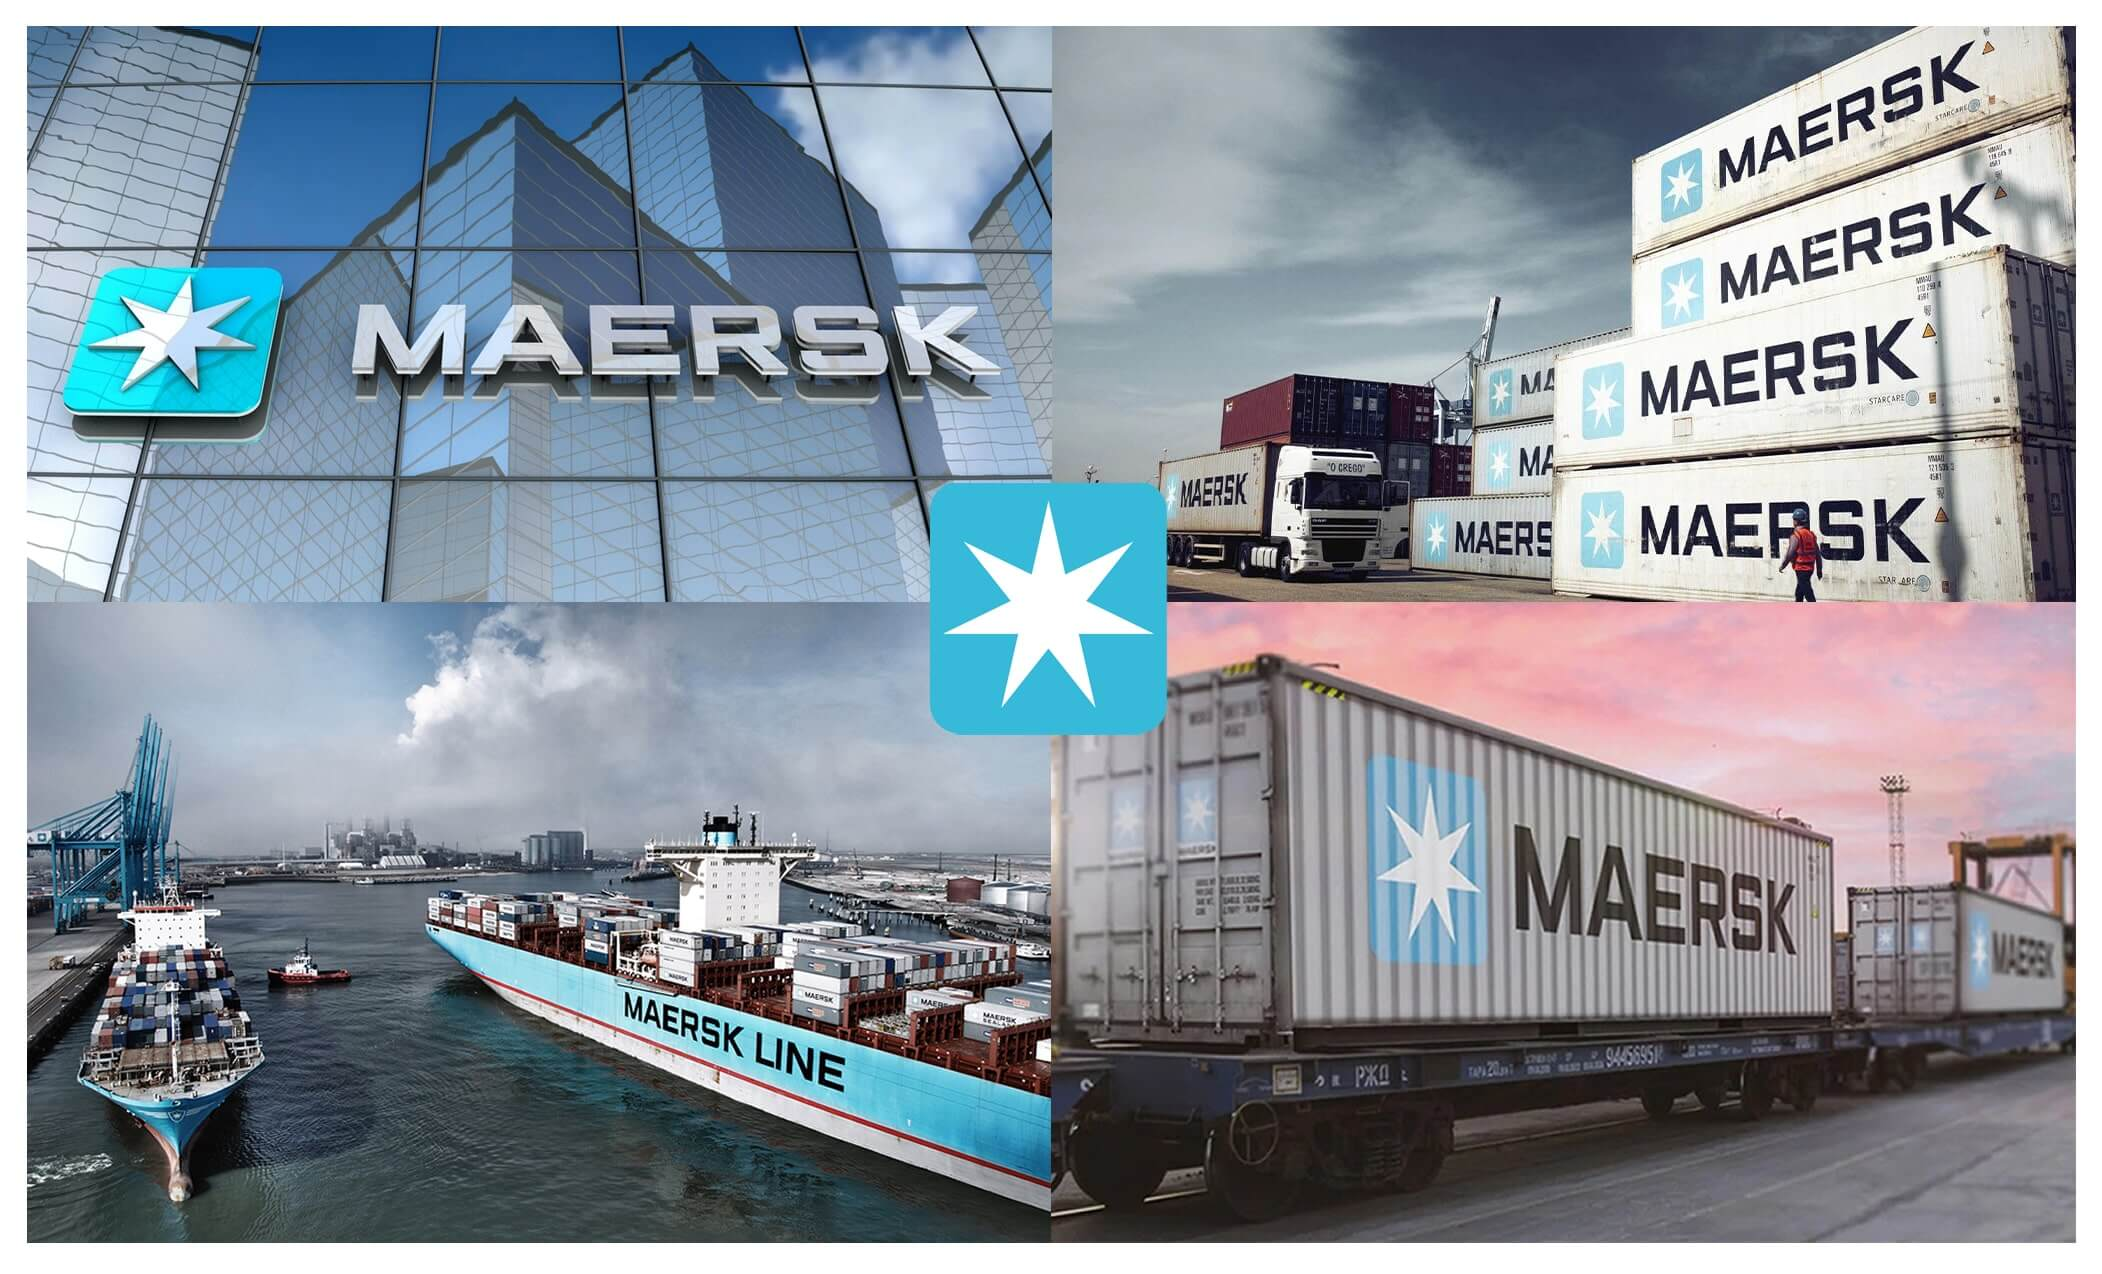 Designer Interview With Craig Ward - Maersk logo